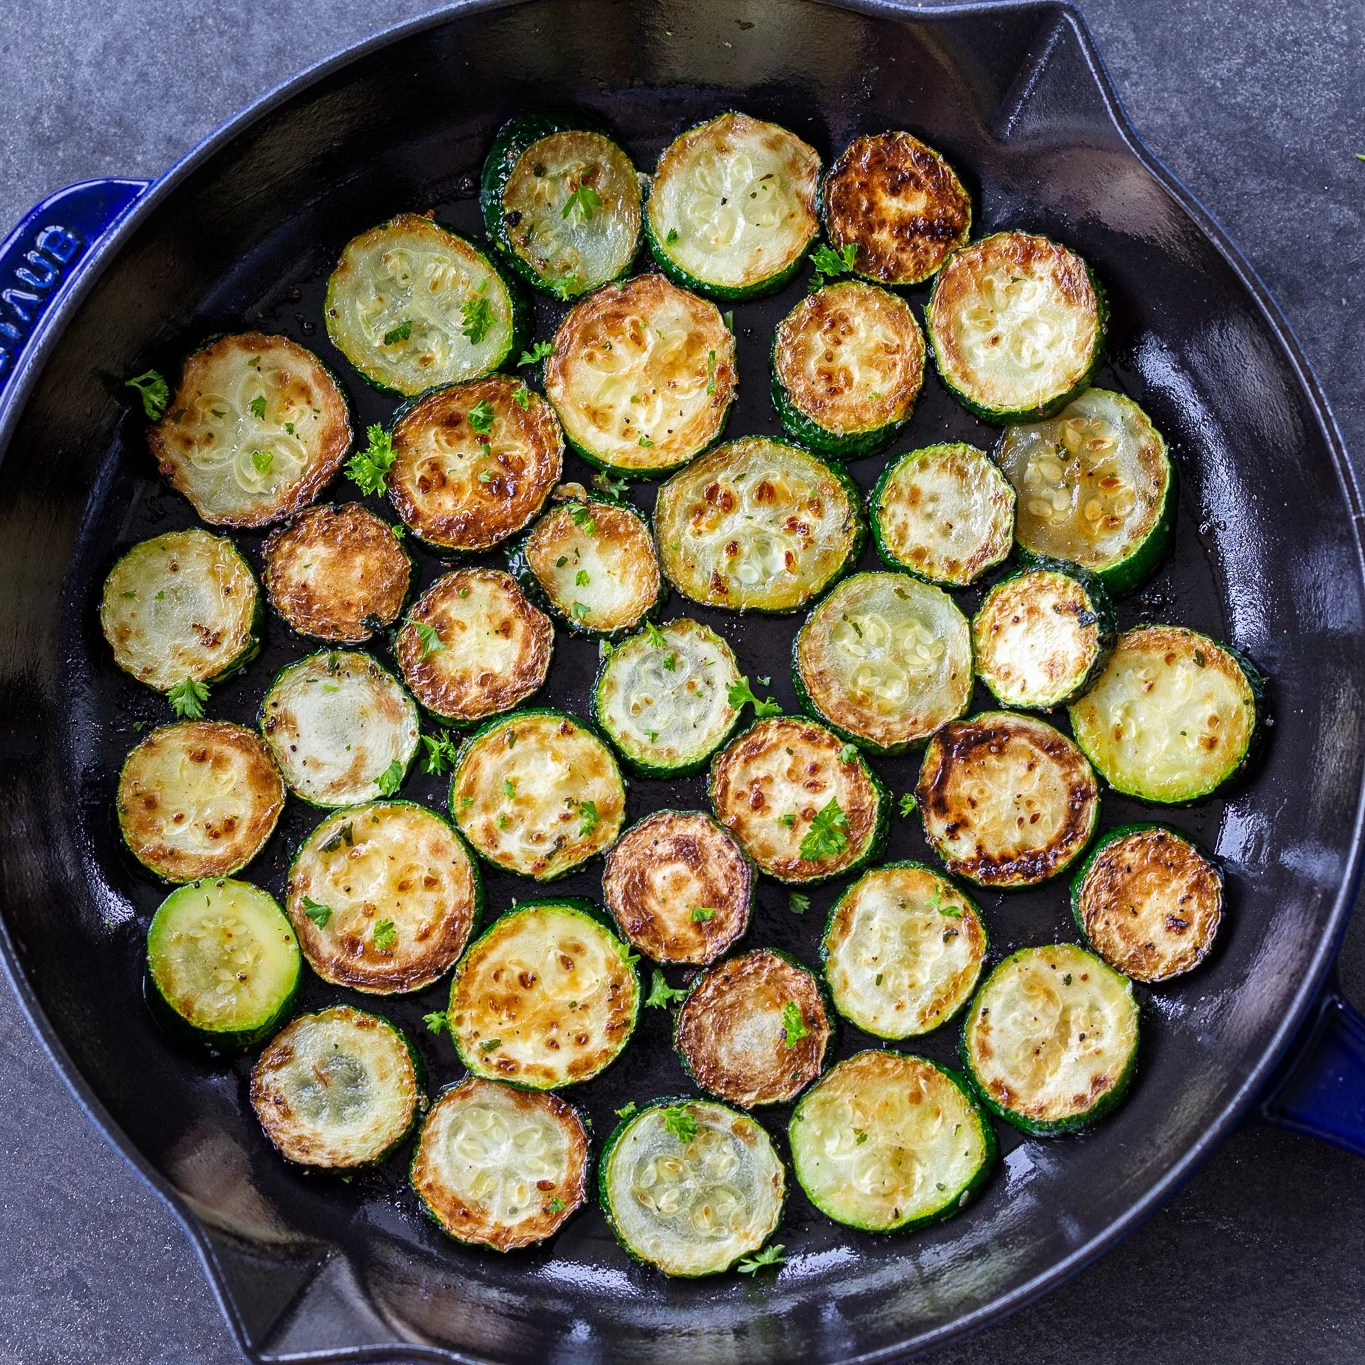 Browned zucchini in a frying pan